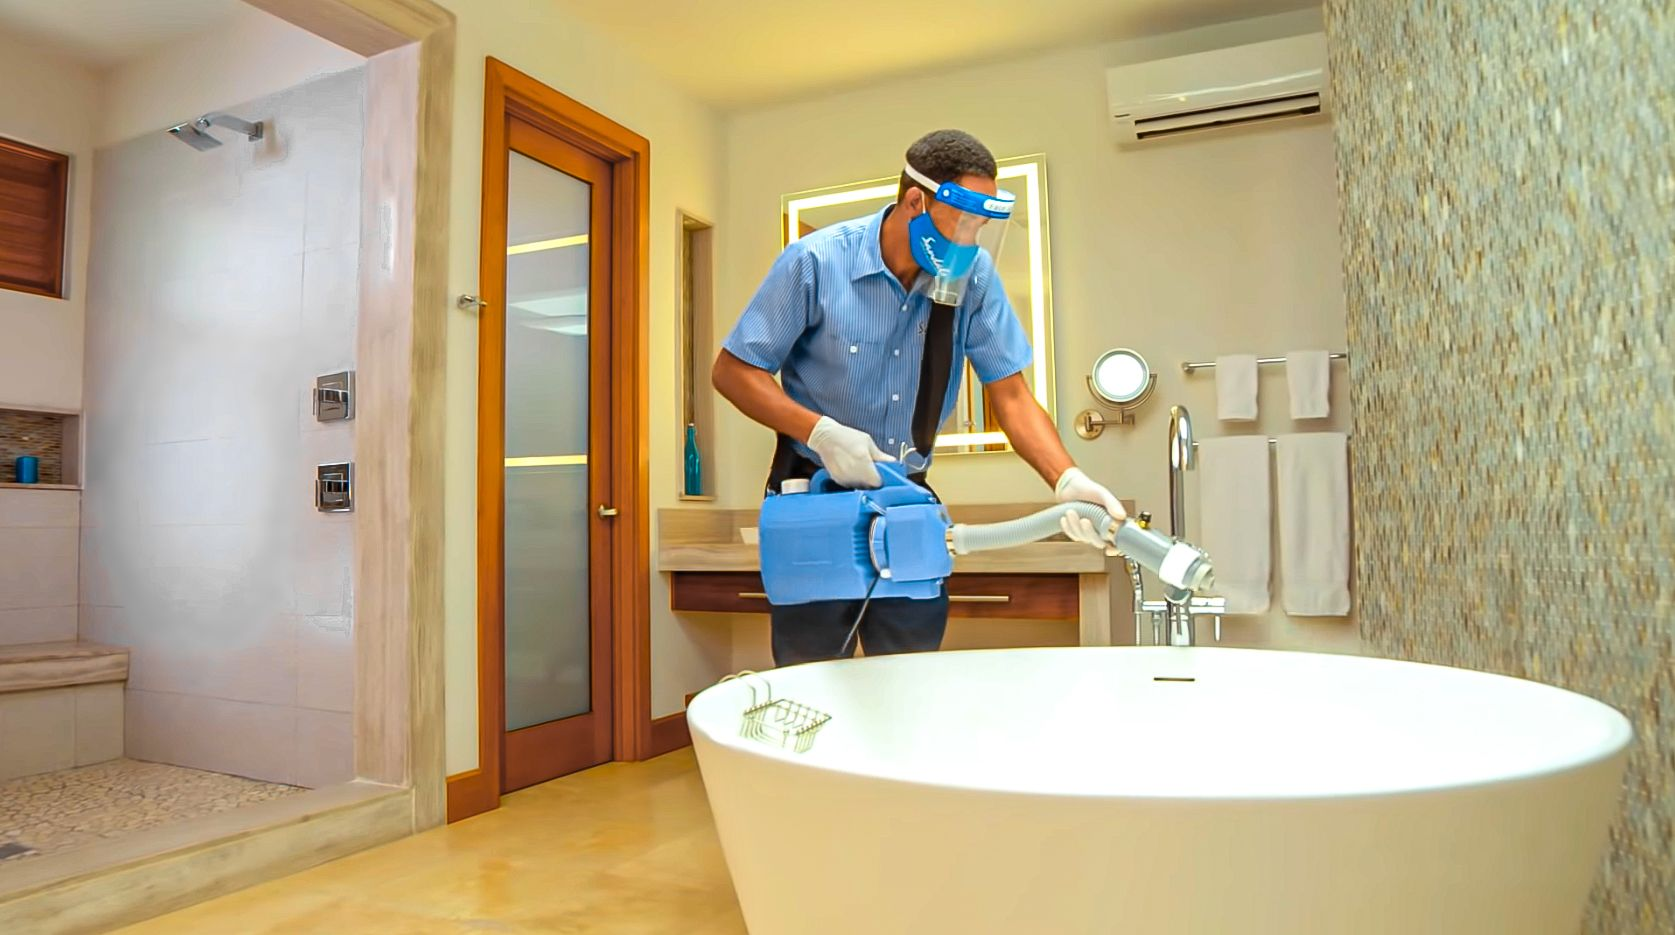 Sandals-Resorts-Cleaning-Protocols